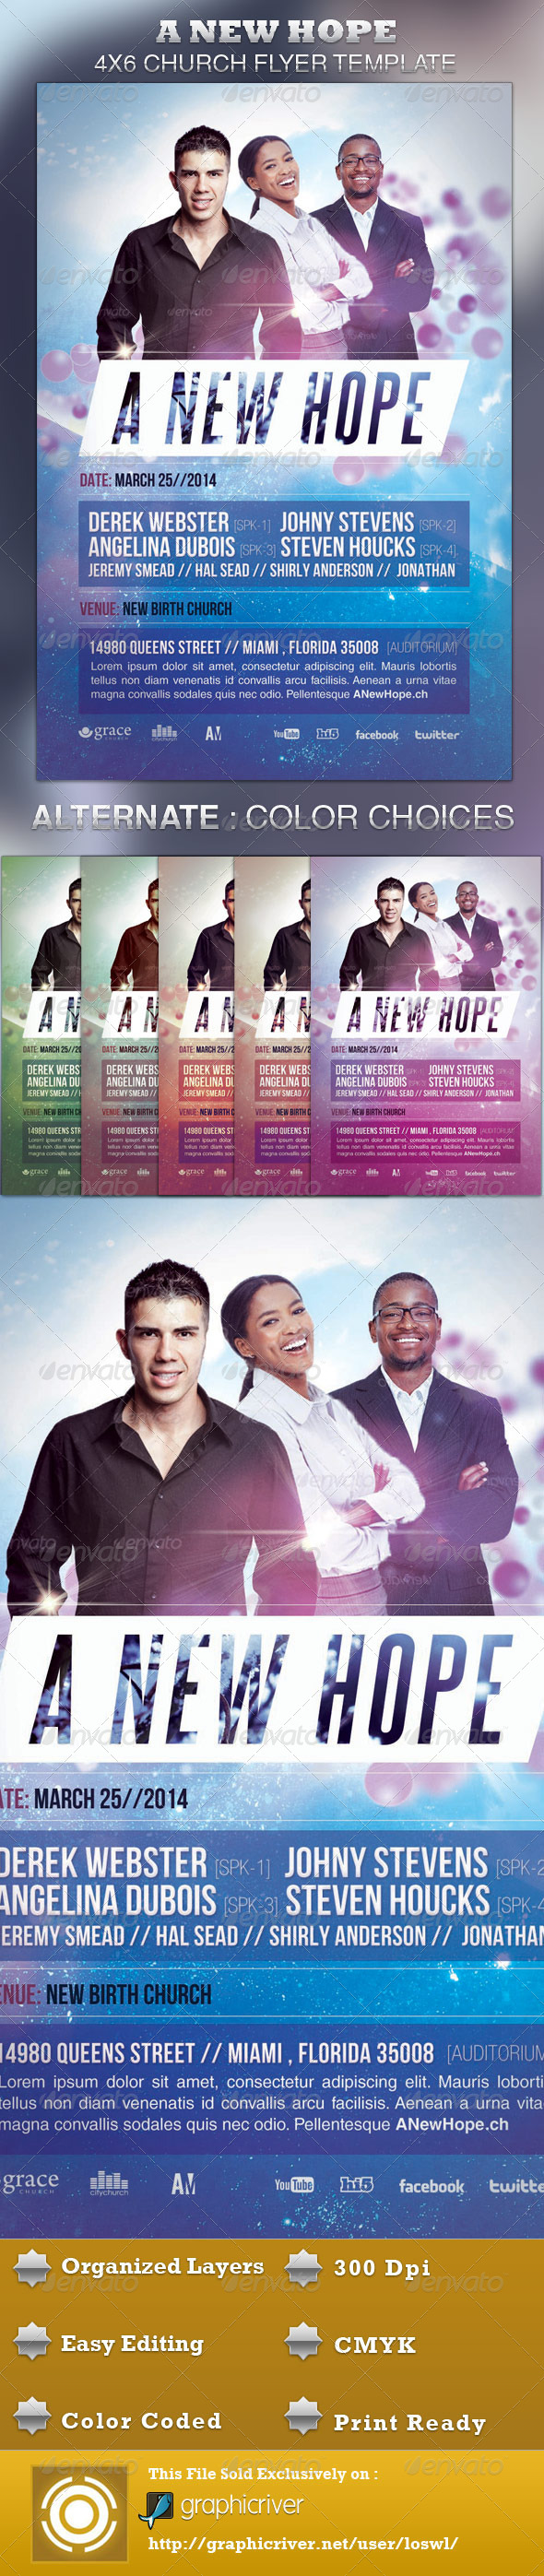 GraphicRiver A New Hope Church Flyer Template 4229022